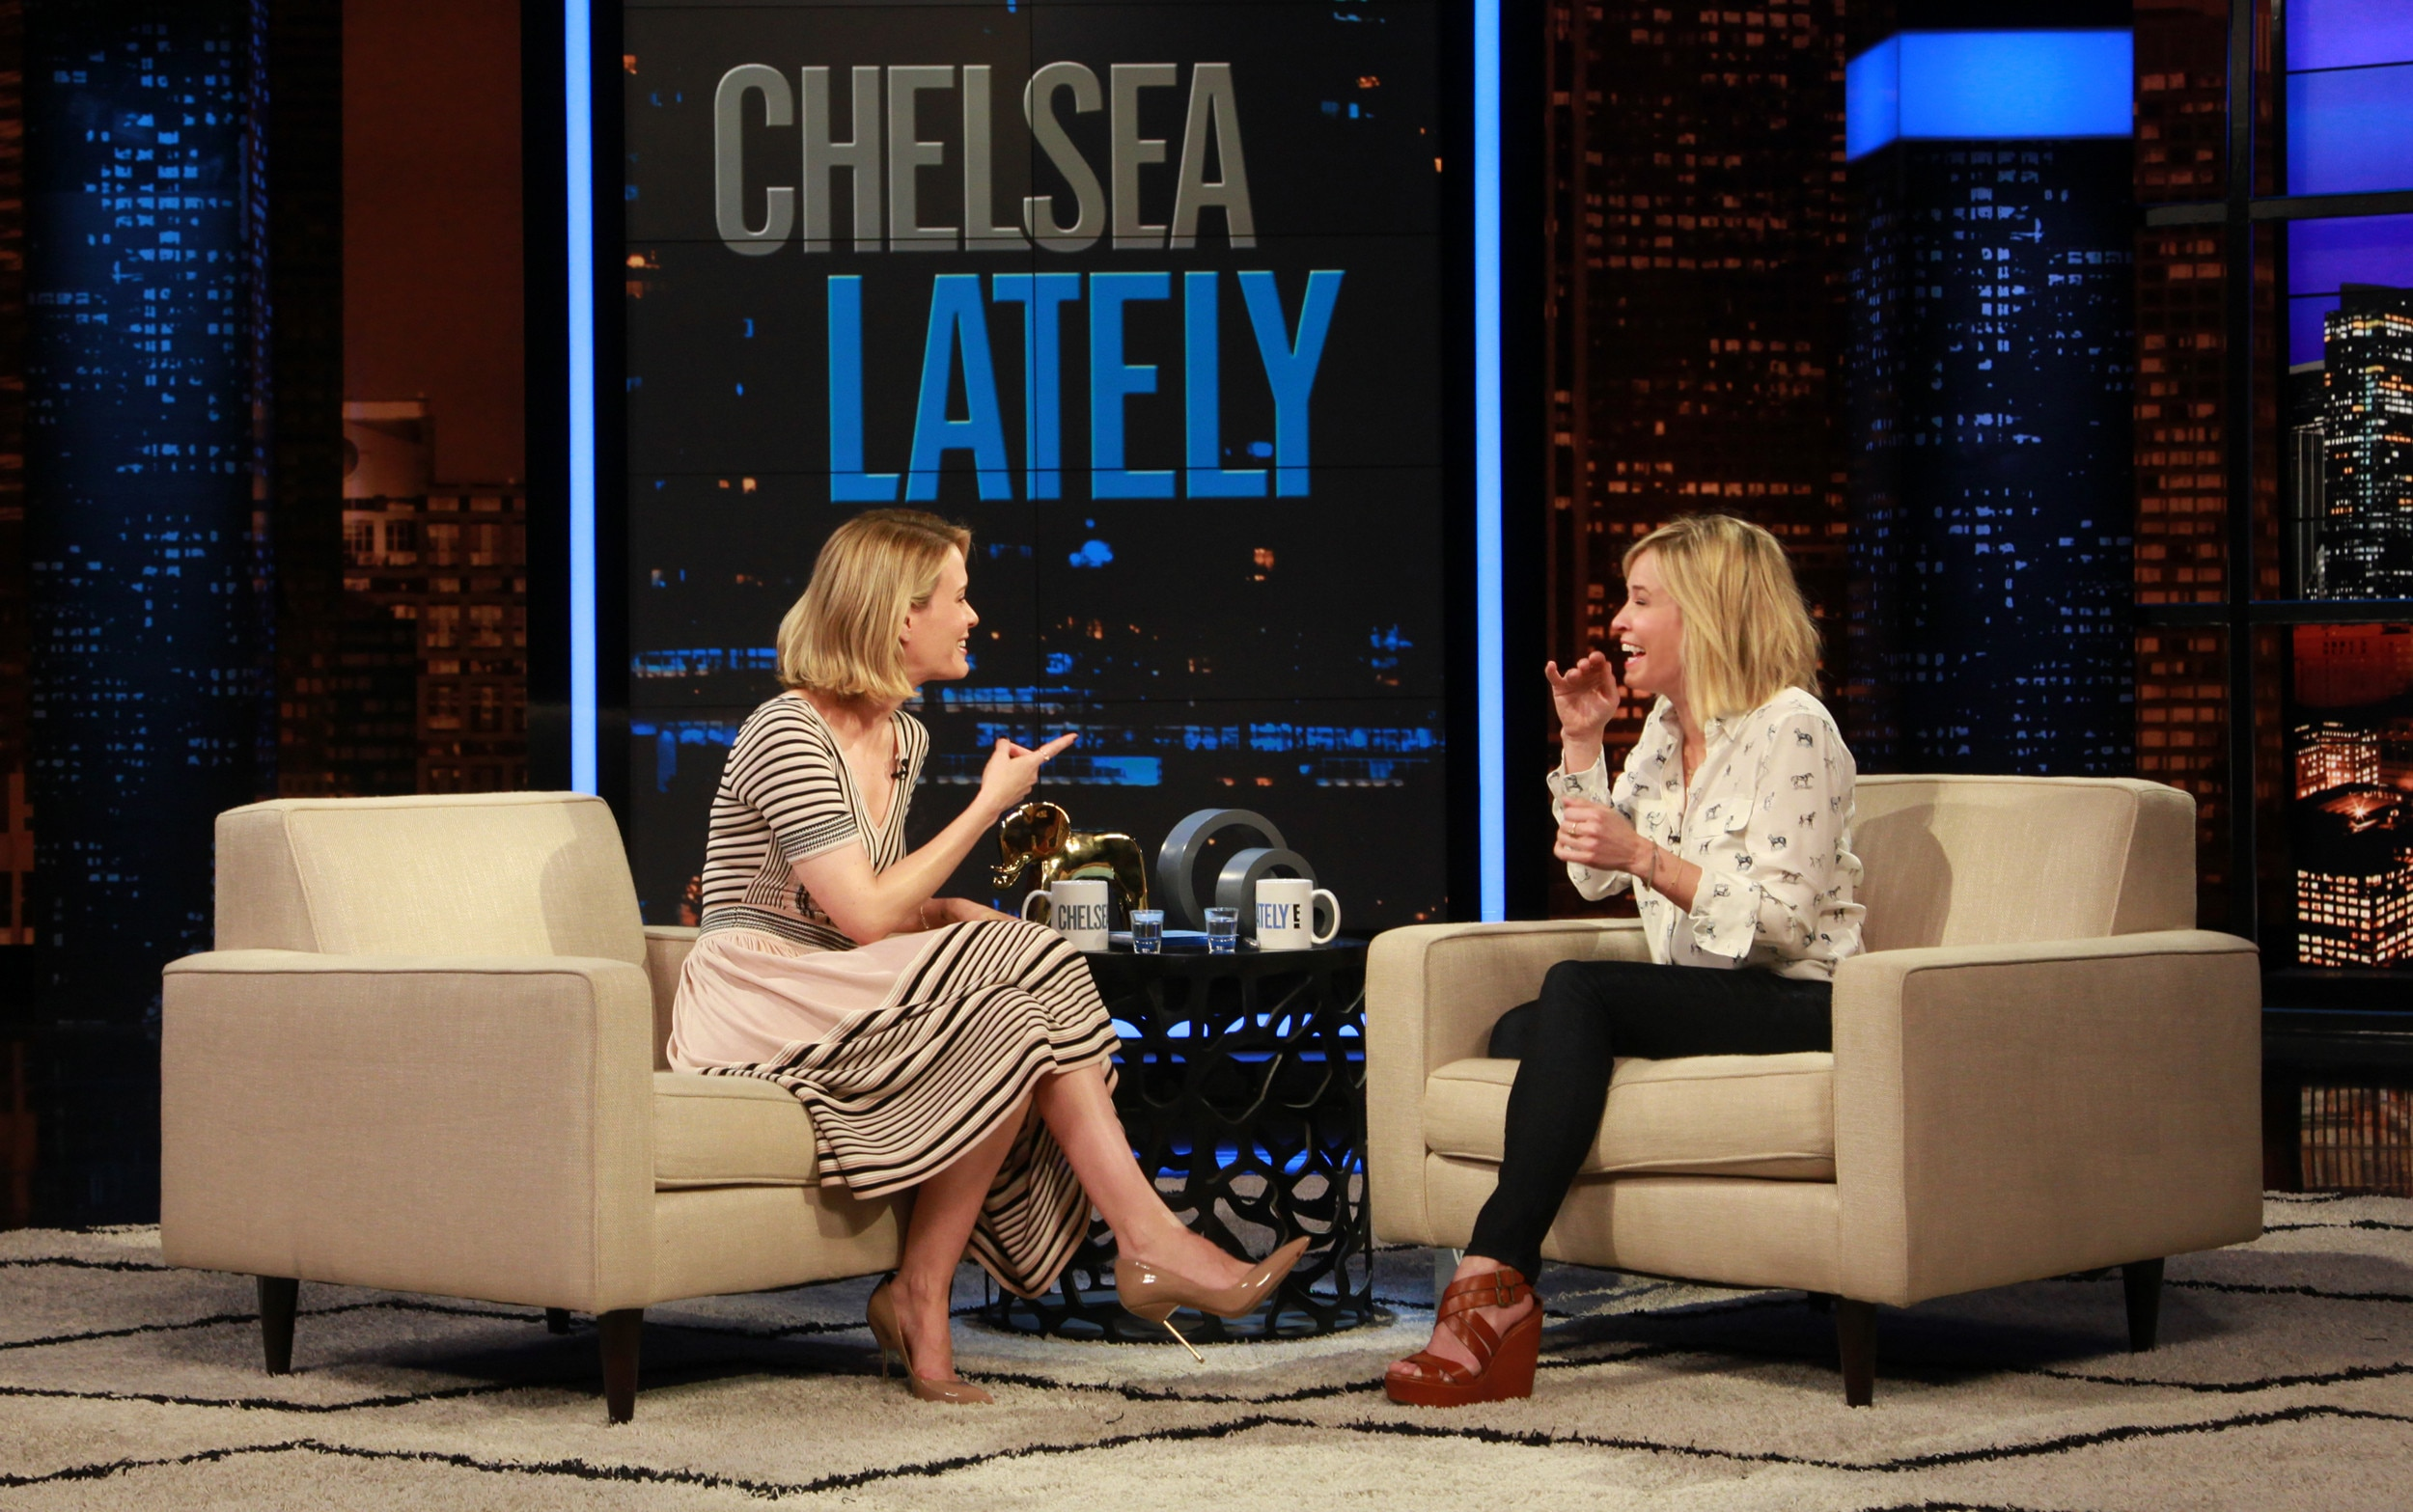 Chelsea Lately Weekly Round-Up 2/24